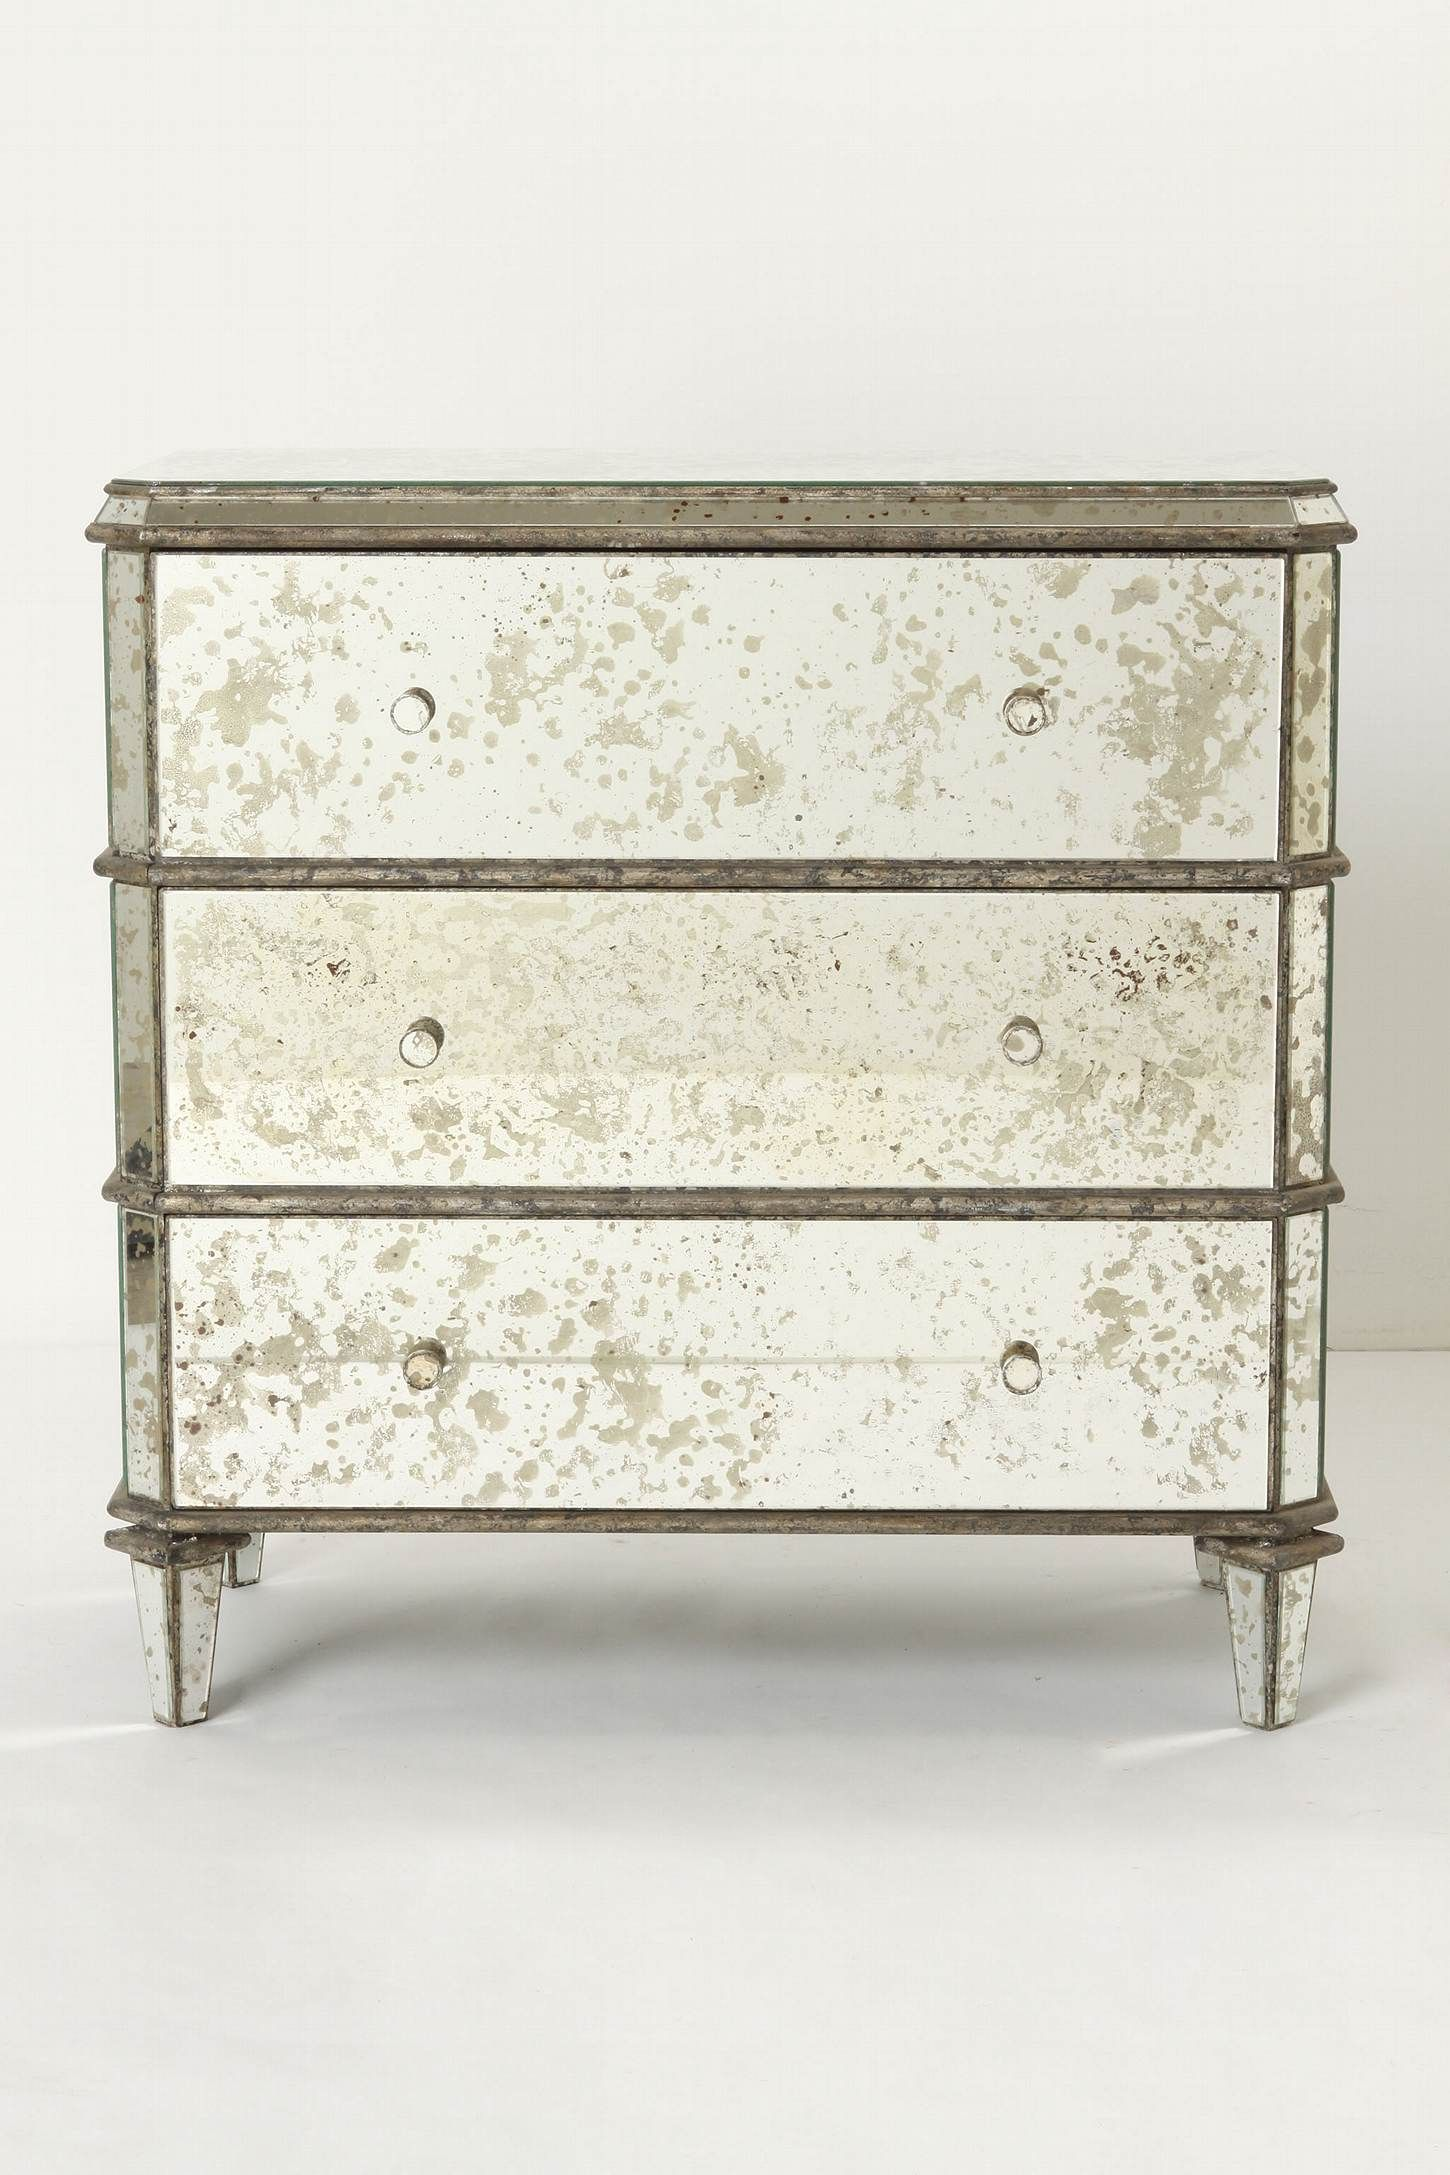 distressed mirrored furniture. Anthropologie Mirrored Dresser Let Us Reflect On The Many Ways To Use This Set Of Dappled Glass Drawers: For Stashing Antique Scarves, Holding Placemats And Distressed Furniture E